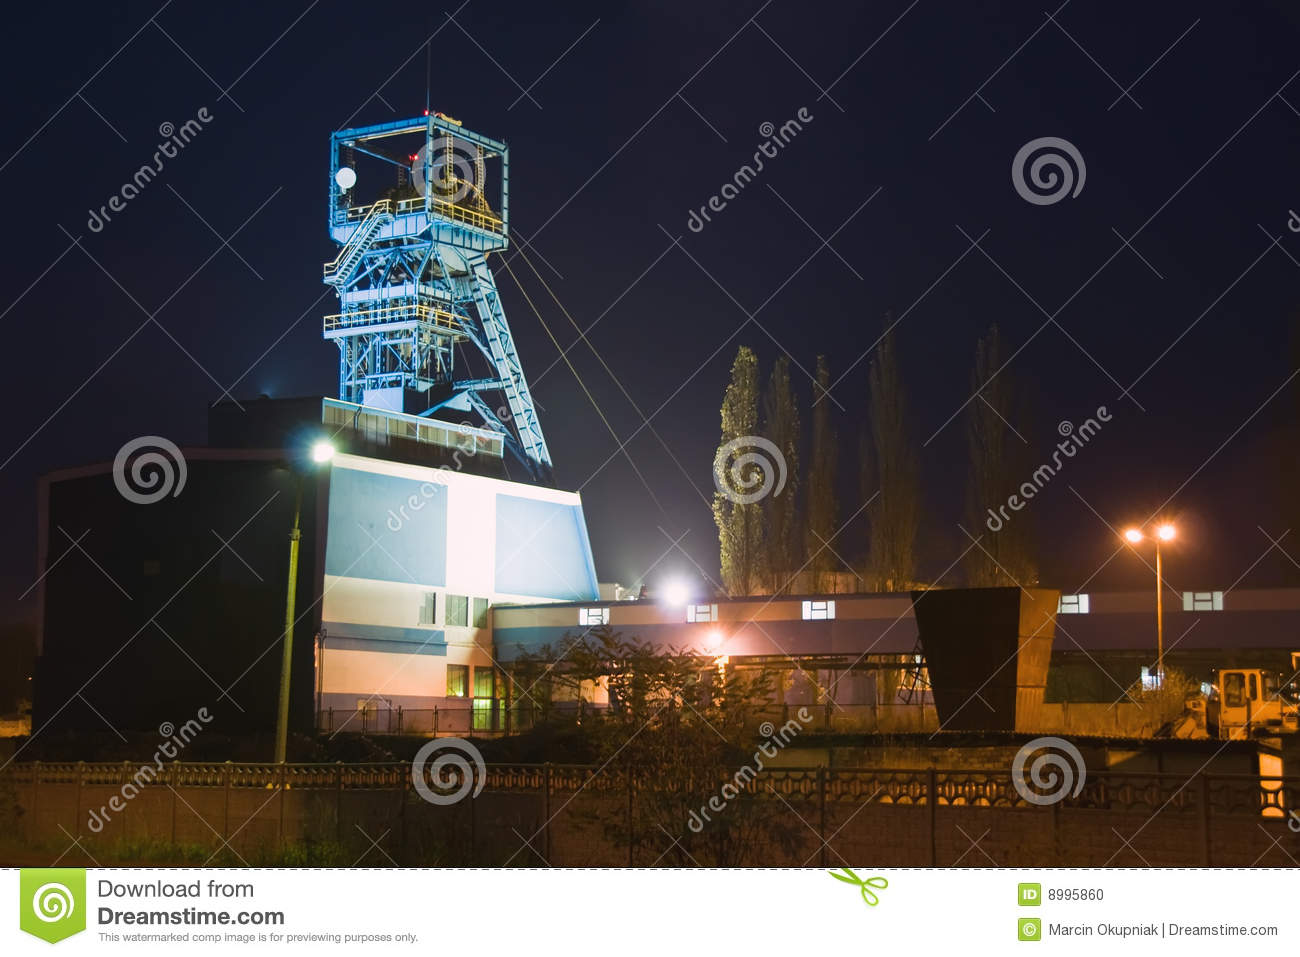 Coal mine at night